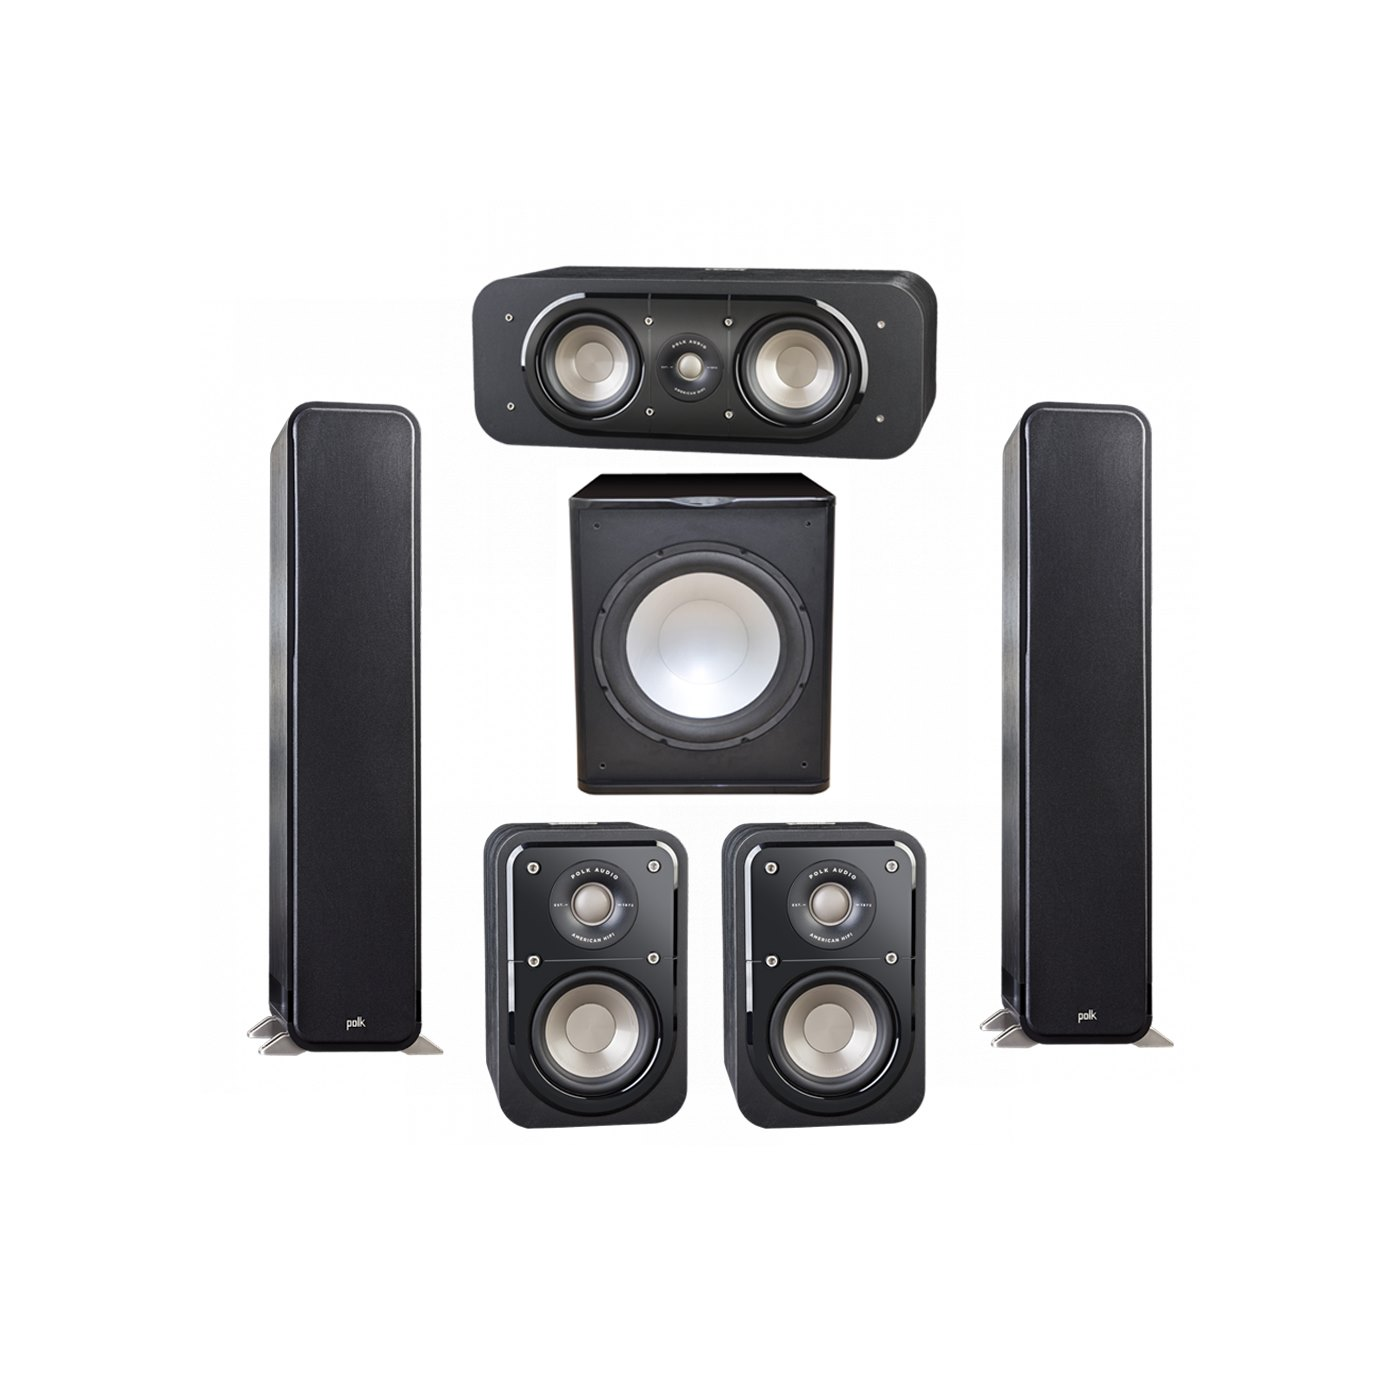 Polk Audio Signature 5.1 System with 2 S55 Tower Speaker, 1 Polk S30 Center Speaker, 2 Polk S10 Surround Speaker, 1 Premier Acoustic PA-150 Powered Subwoofer